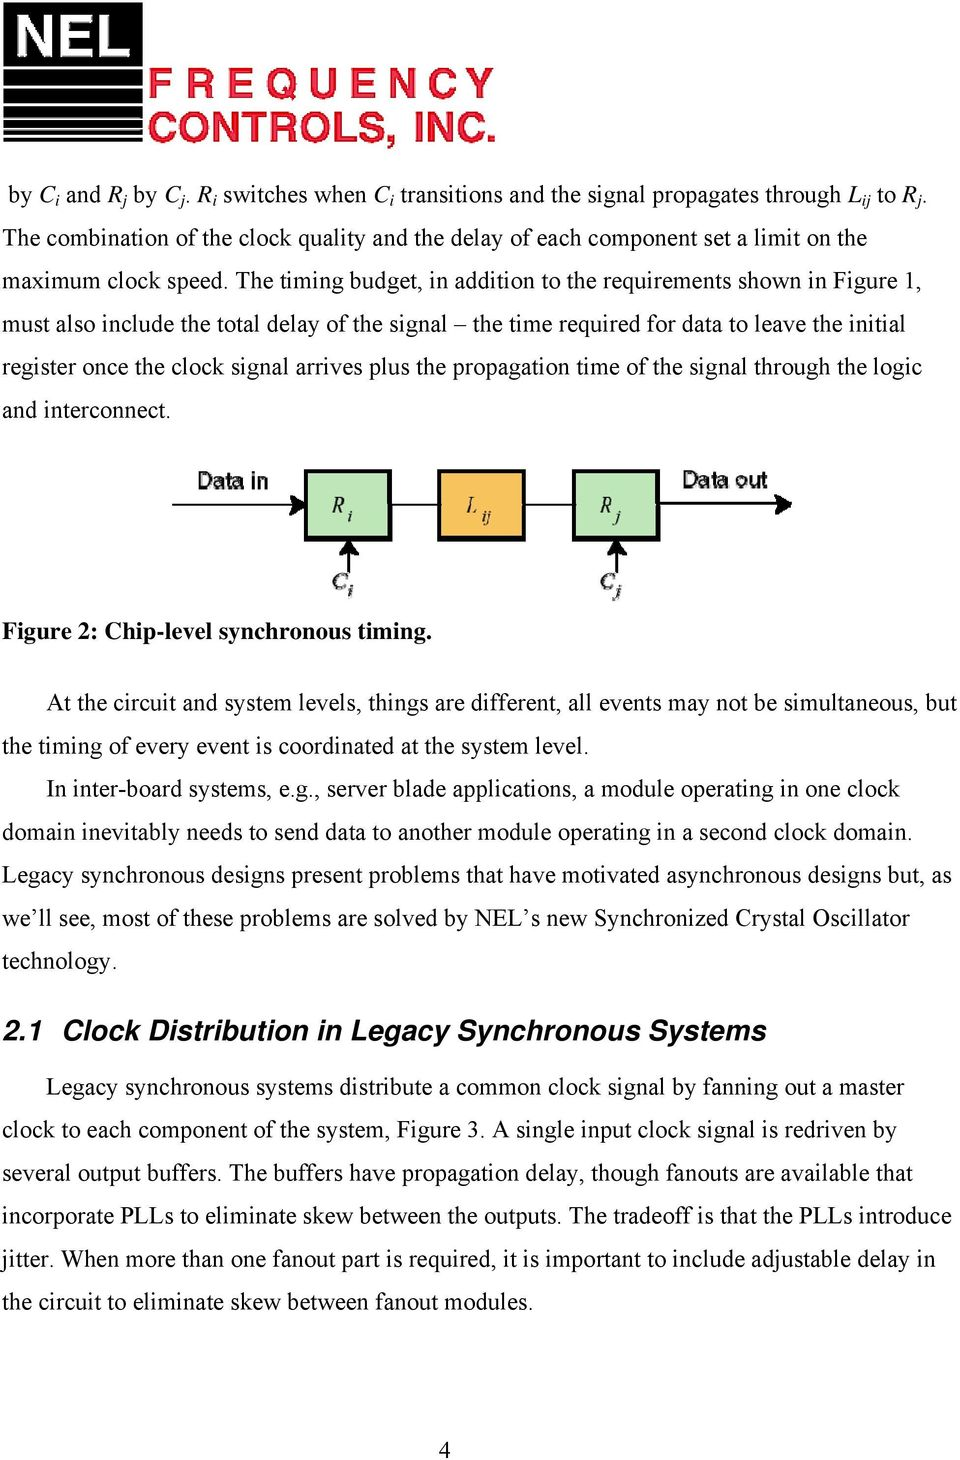 The timing budget, in addition to the requirements shown in Figure 1, must also include the total delay of the signal the time required for data to leave the initial register once the clock signal